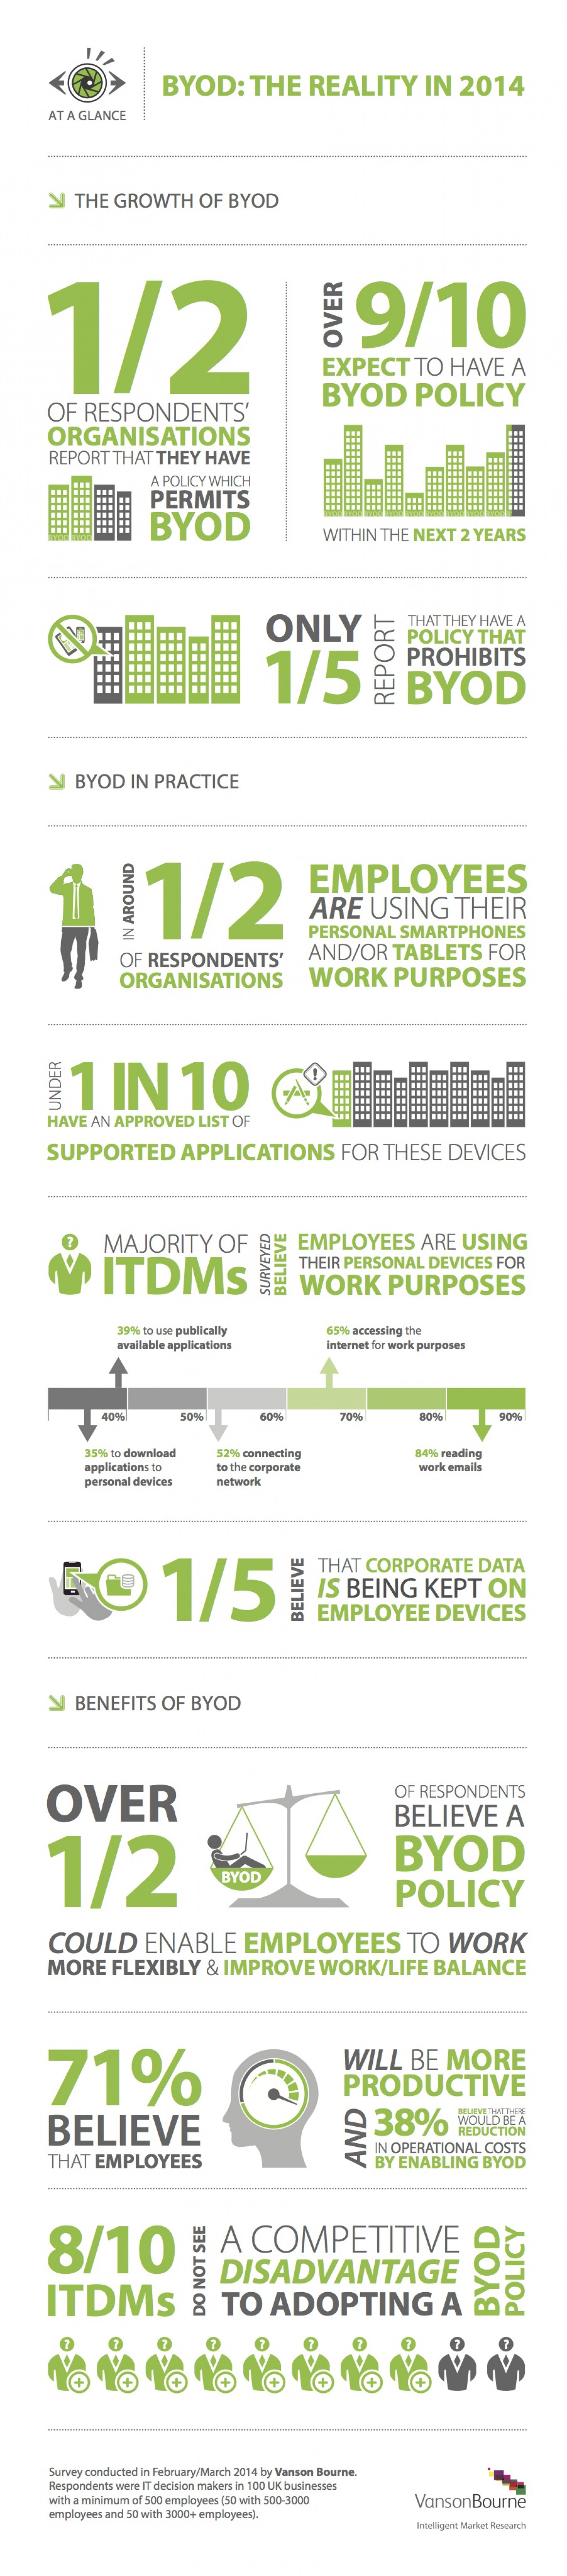 BYOD : The Reality in 2014 Infographic